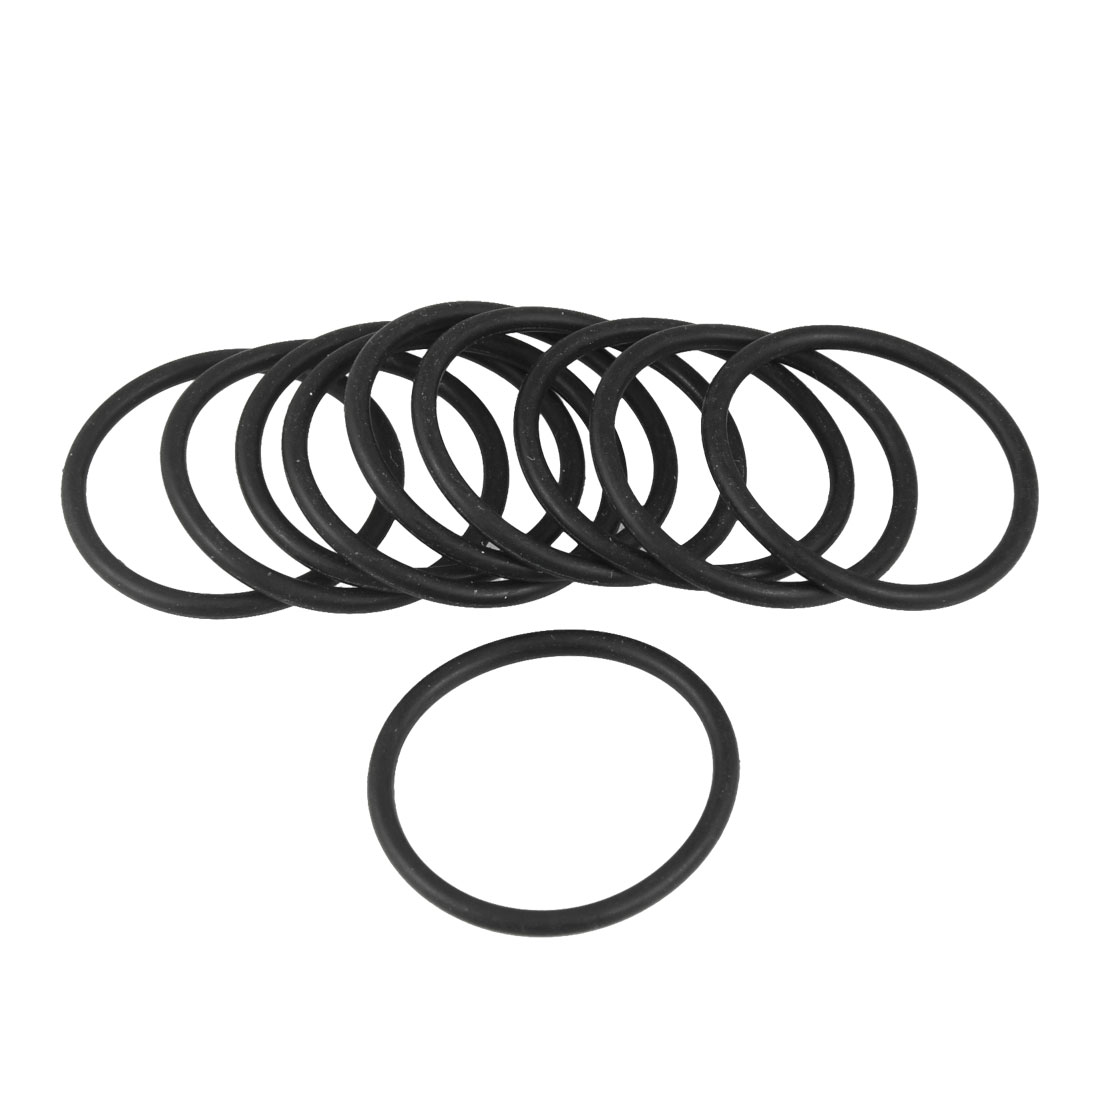 10 Pcs Black 34mm OD 2.4mm Thickness Nitrile Rubber O-ring Oil Seal Gaskets